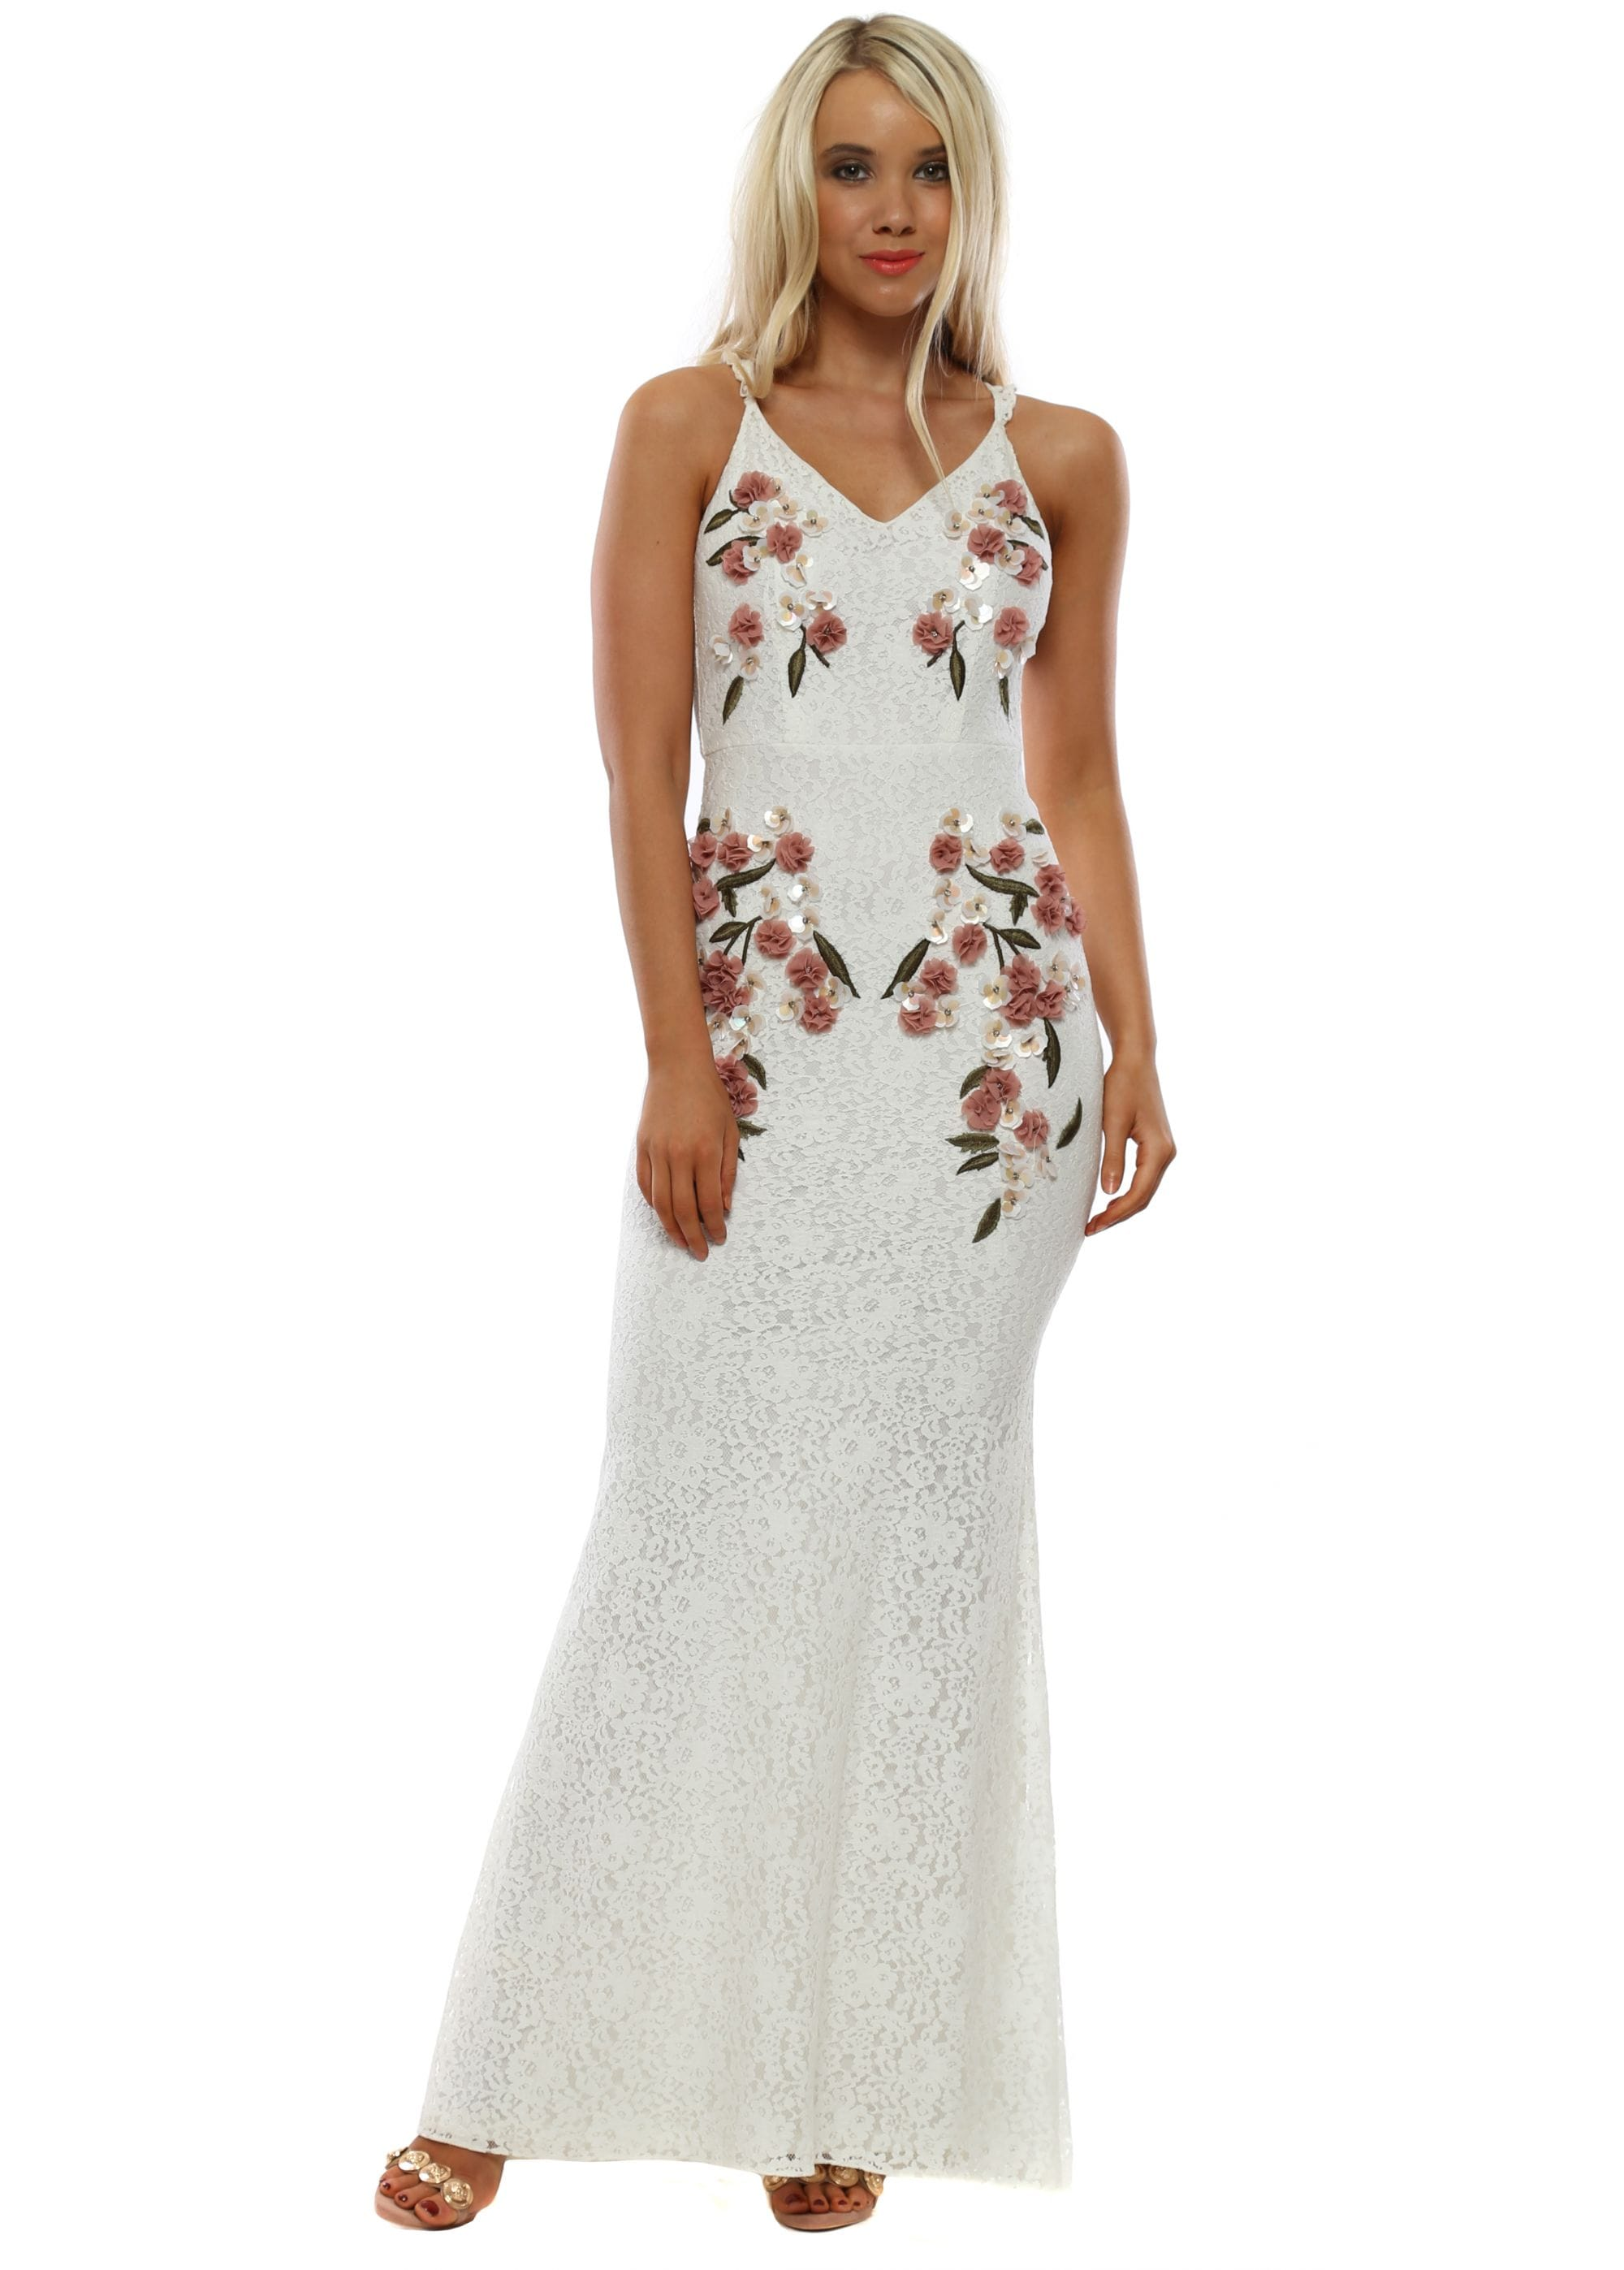 4ec6f0e68ee White Lace Cami Maxi Dress With 3D Floral Applique